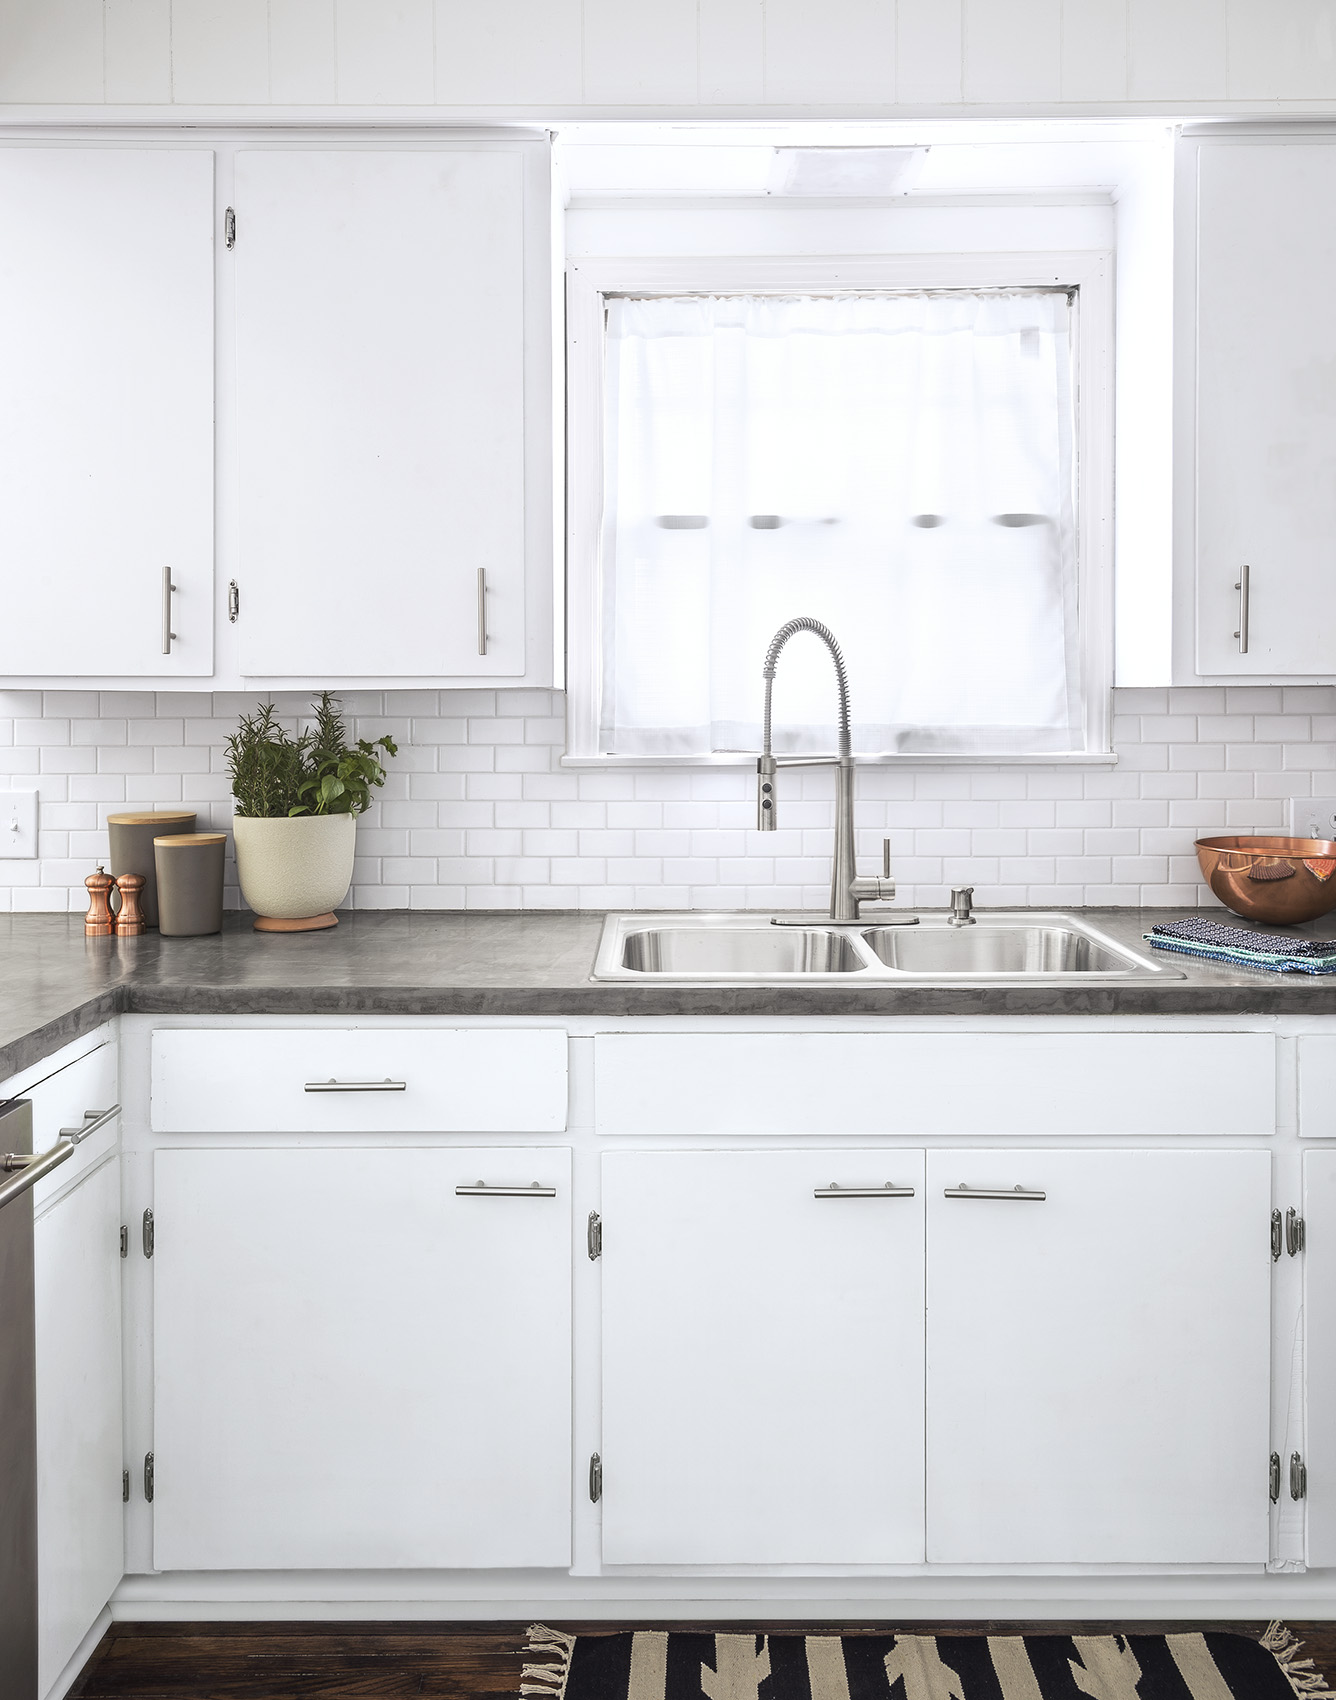 Renovation Ideas For Kitchen: Real Simple